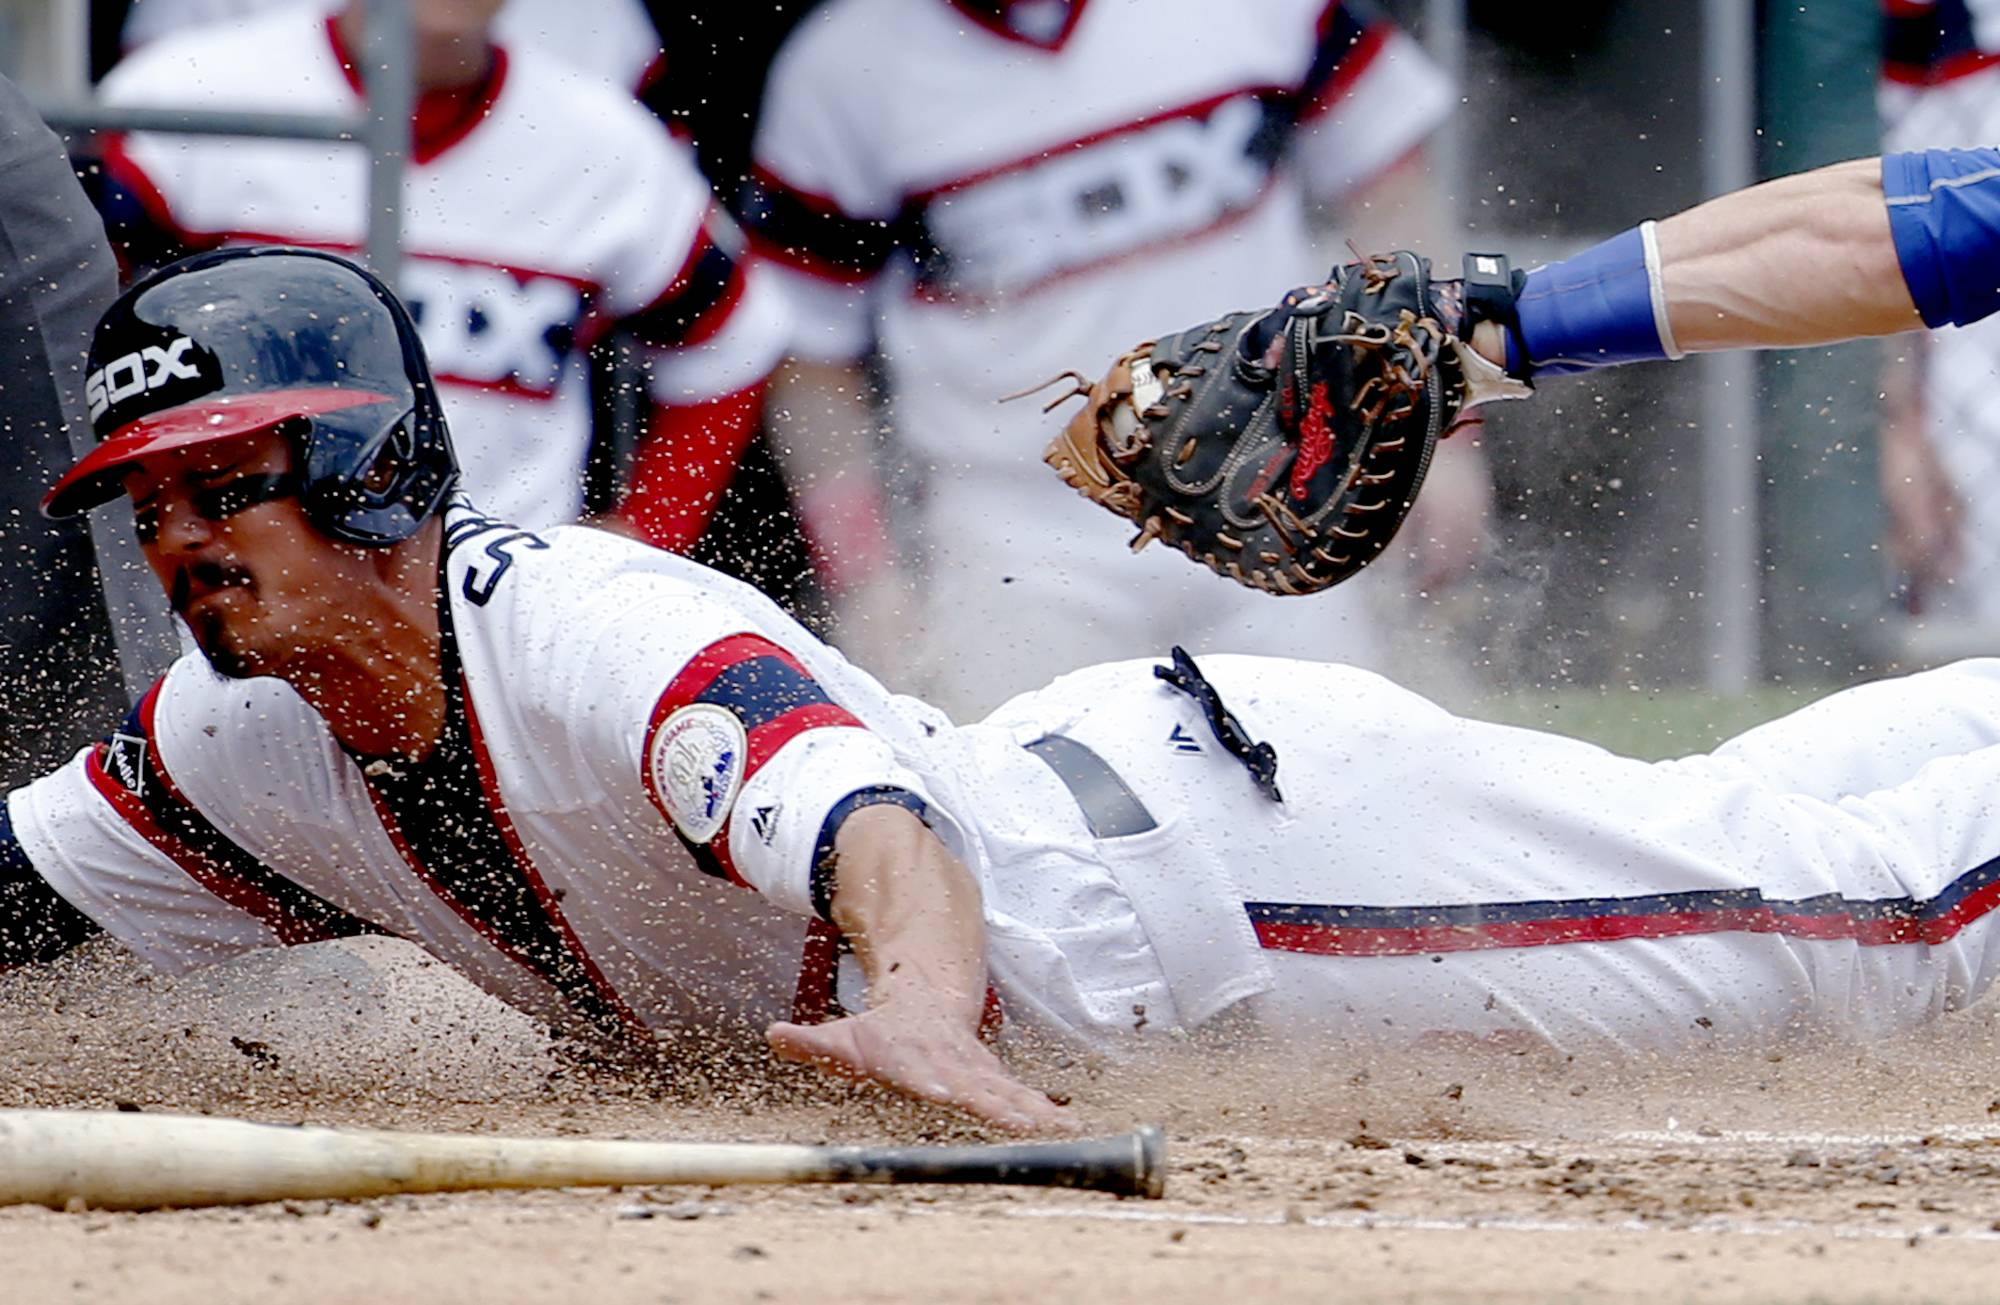 Chicago White Sox's Tyler Saladino, left, scores on a sacrifice bunt by Adam Eaton as Toronto Blue Jays catcher Russell Martin applies a late tag during the third inning of a baseball game in Chicago, Sunday, June 26, 2016. (AP Photo/Nam Y. Huh)